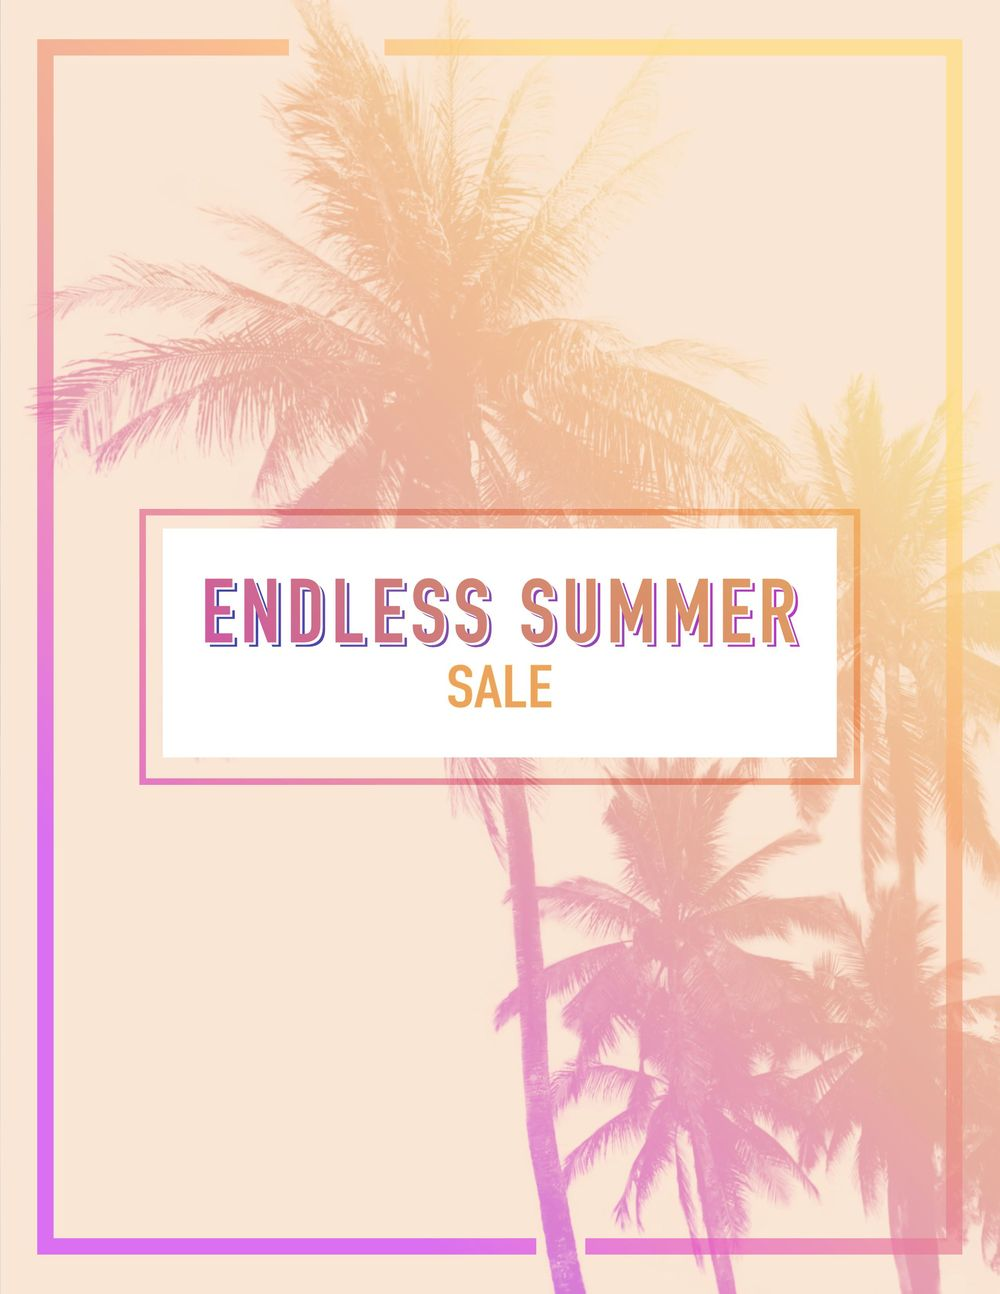 Endless Summer & Wander Poster - image 1 - student project